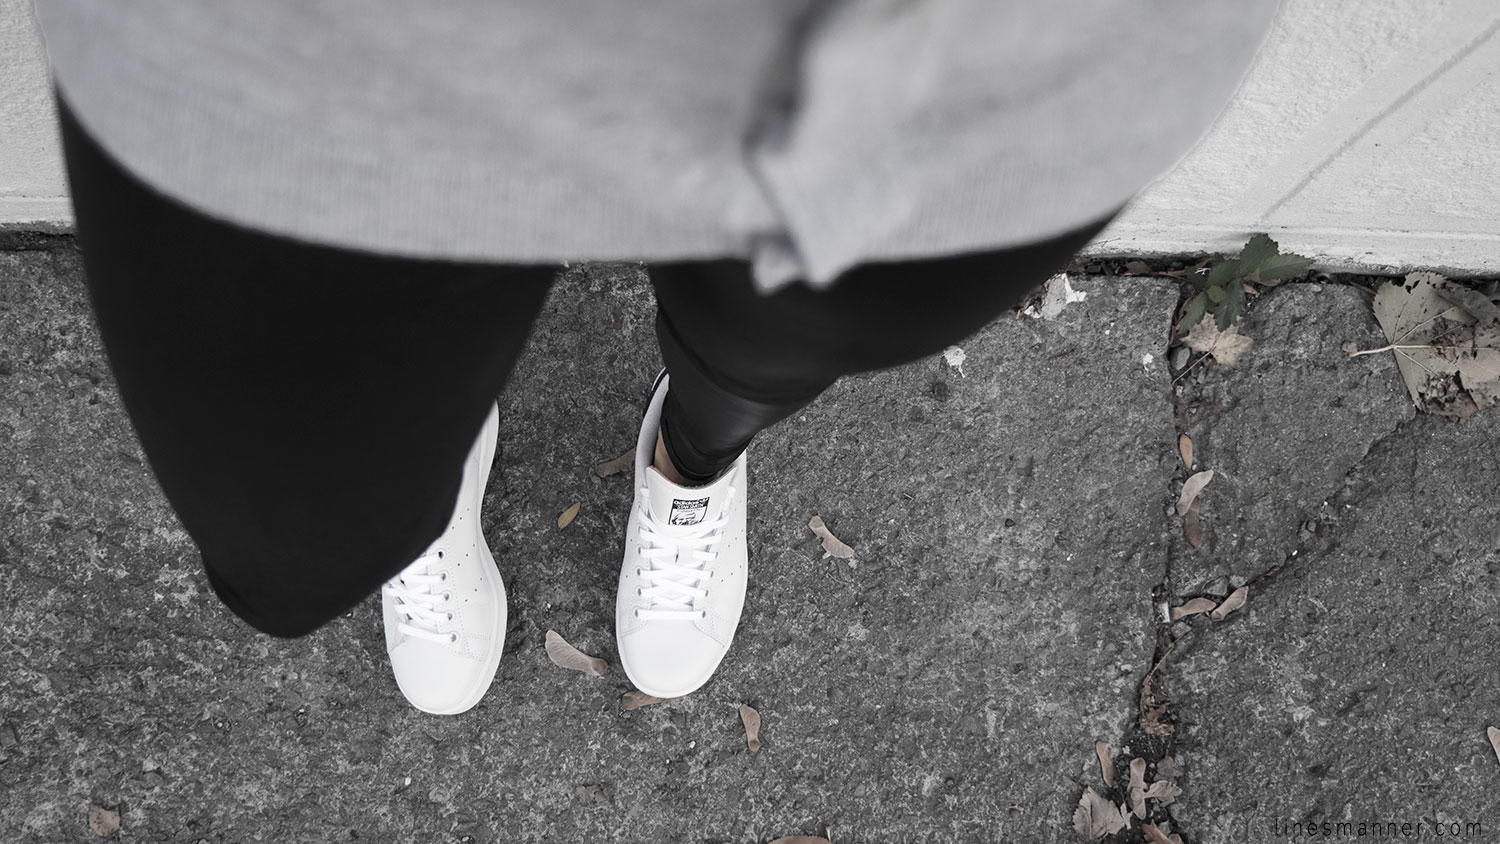 Lines-Manner-Timeless-Comfort-Essentials-Monochrome-Trend-Minimal-Textures-Fall-Details-Simplicity-Cardigan-Reveal-Sneakers-Stan_Smith-Adidas-Basics-Outfit-5